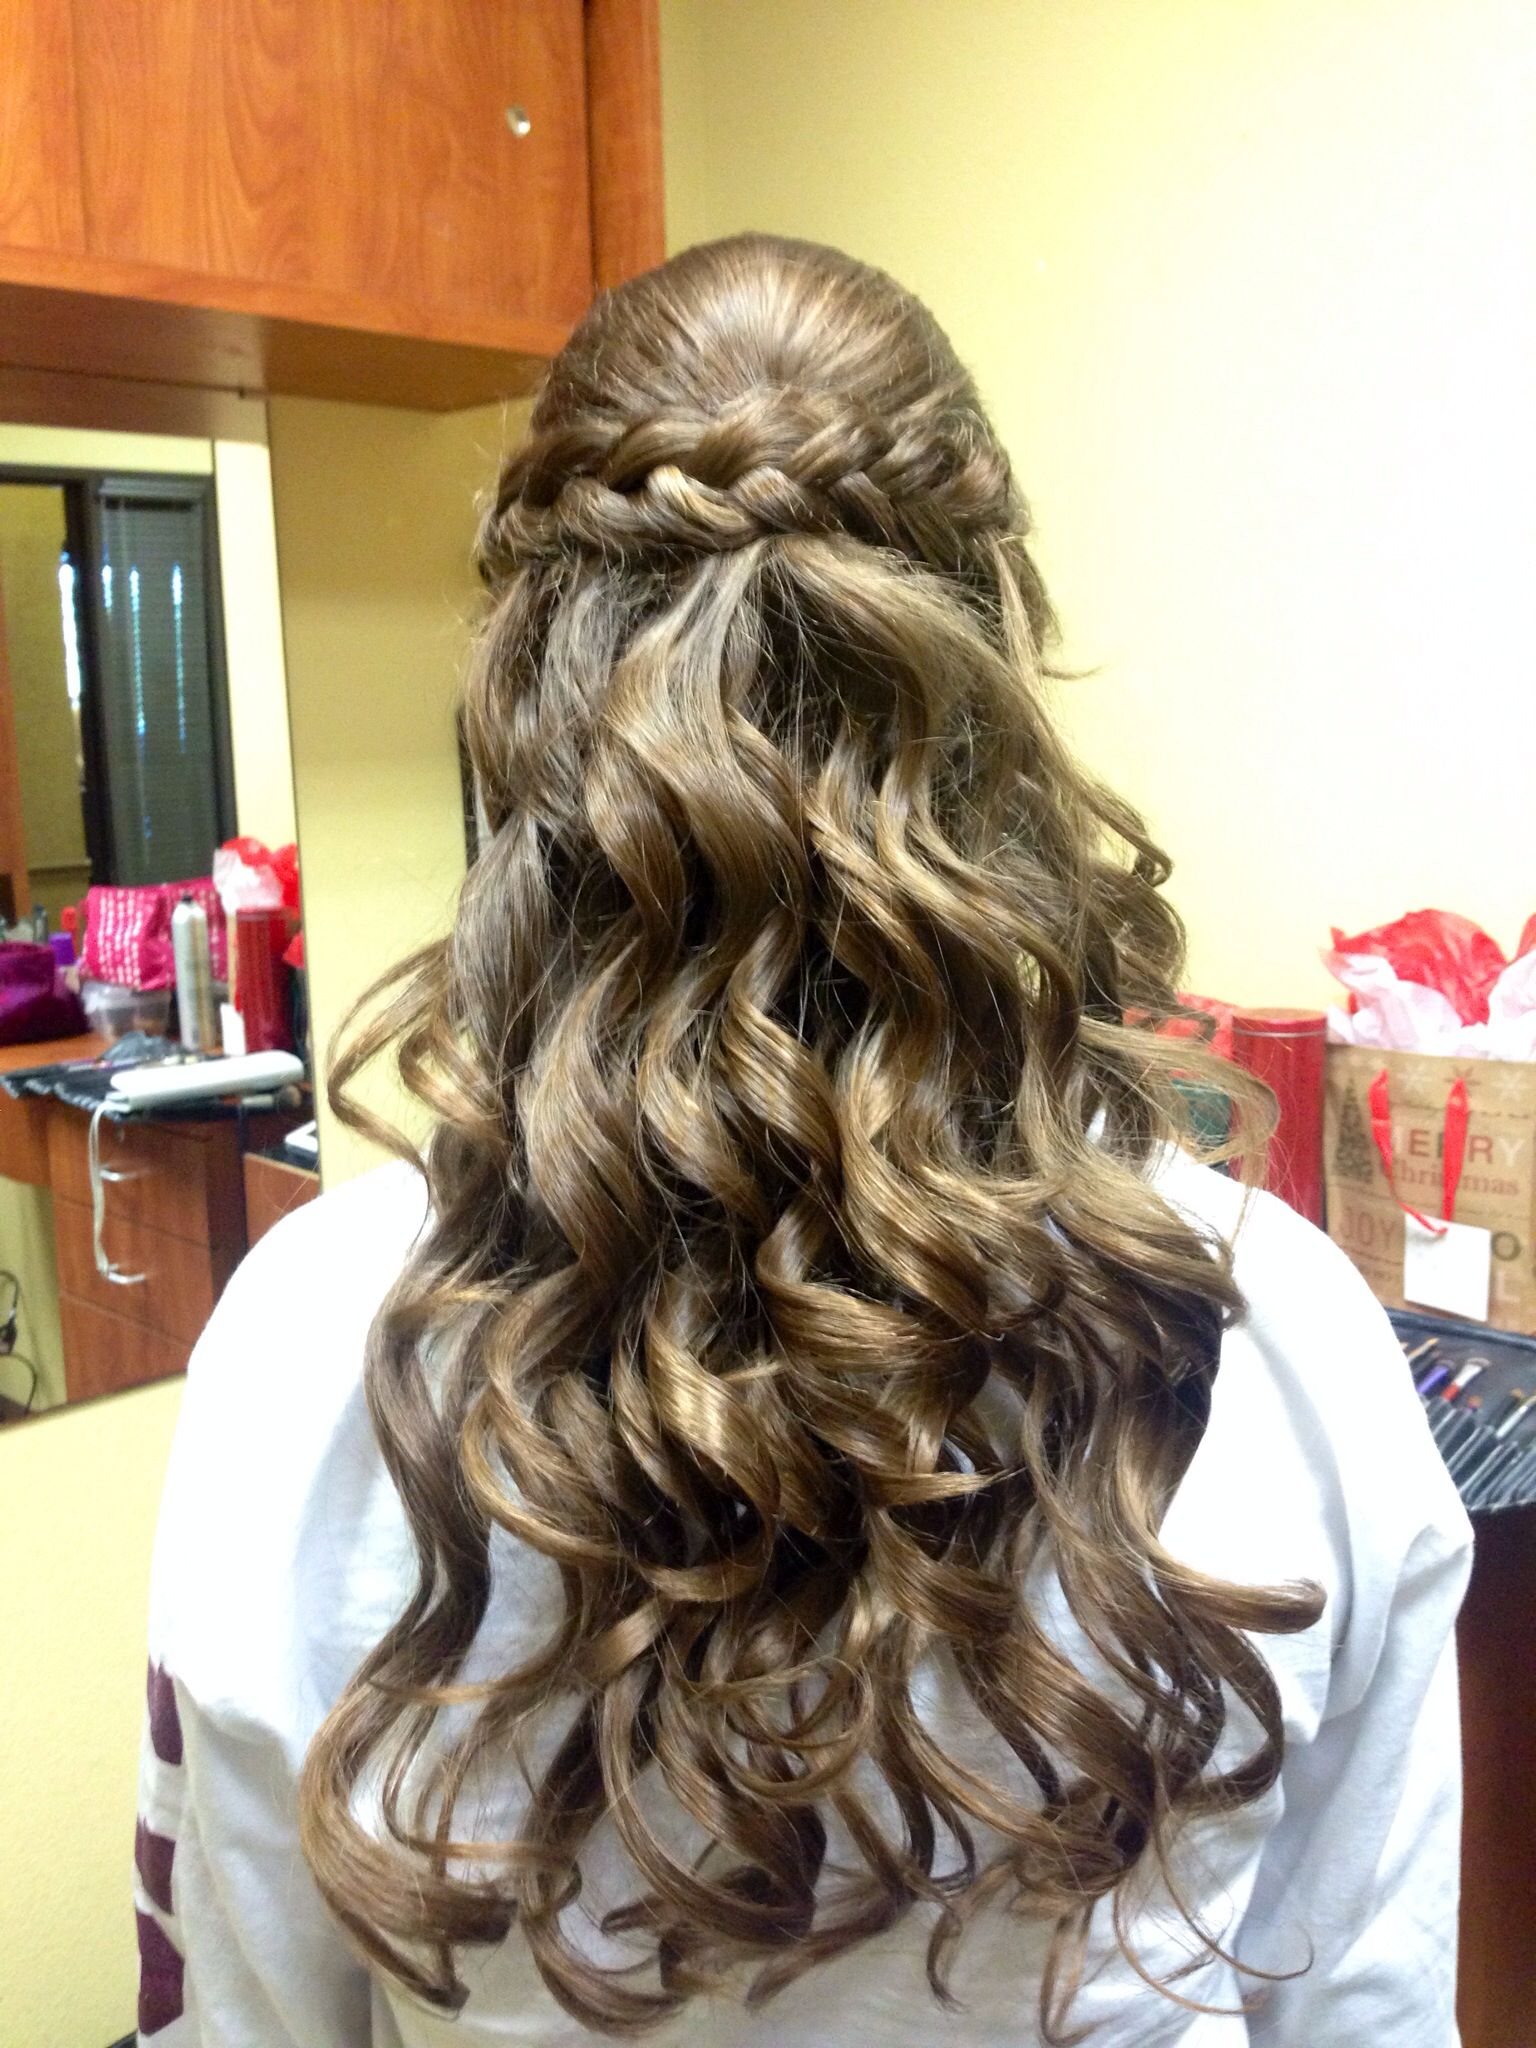 Half up half down w braid THIS IS MY SISTERS HAIR FOR A DANCE AT